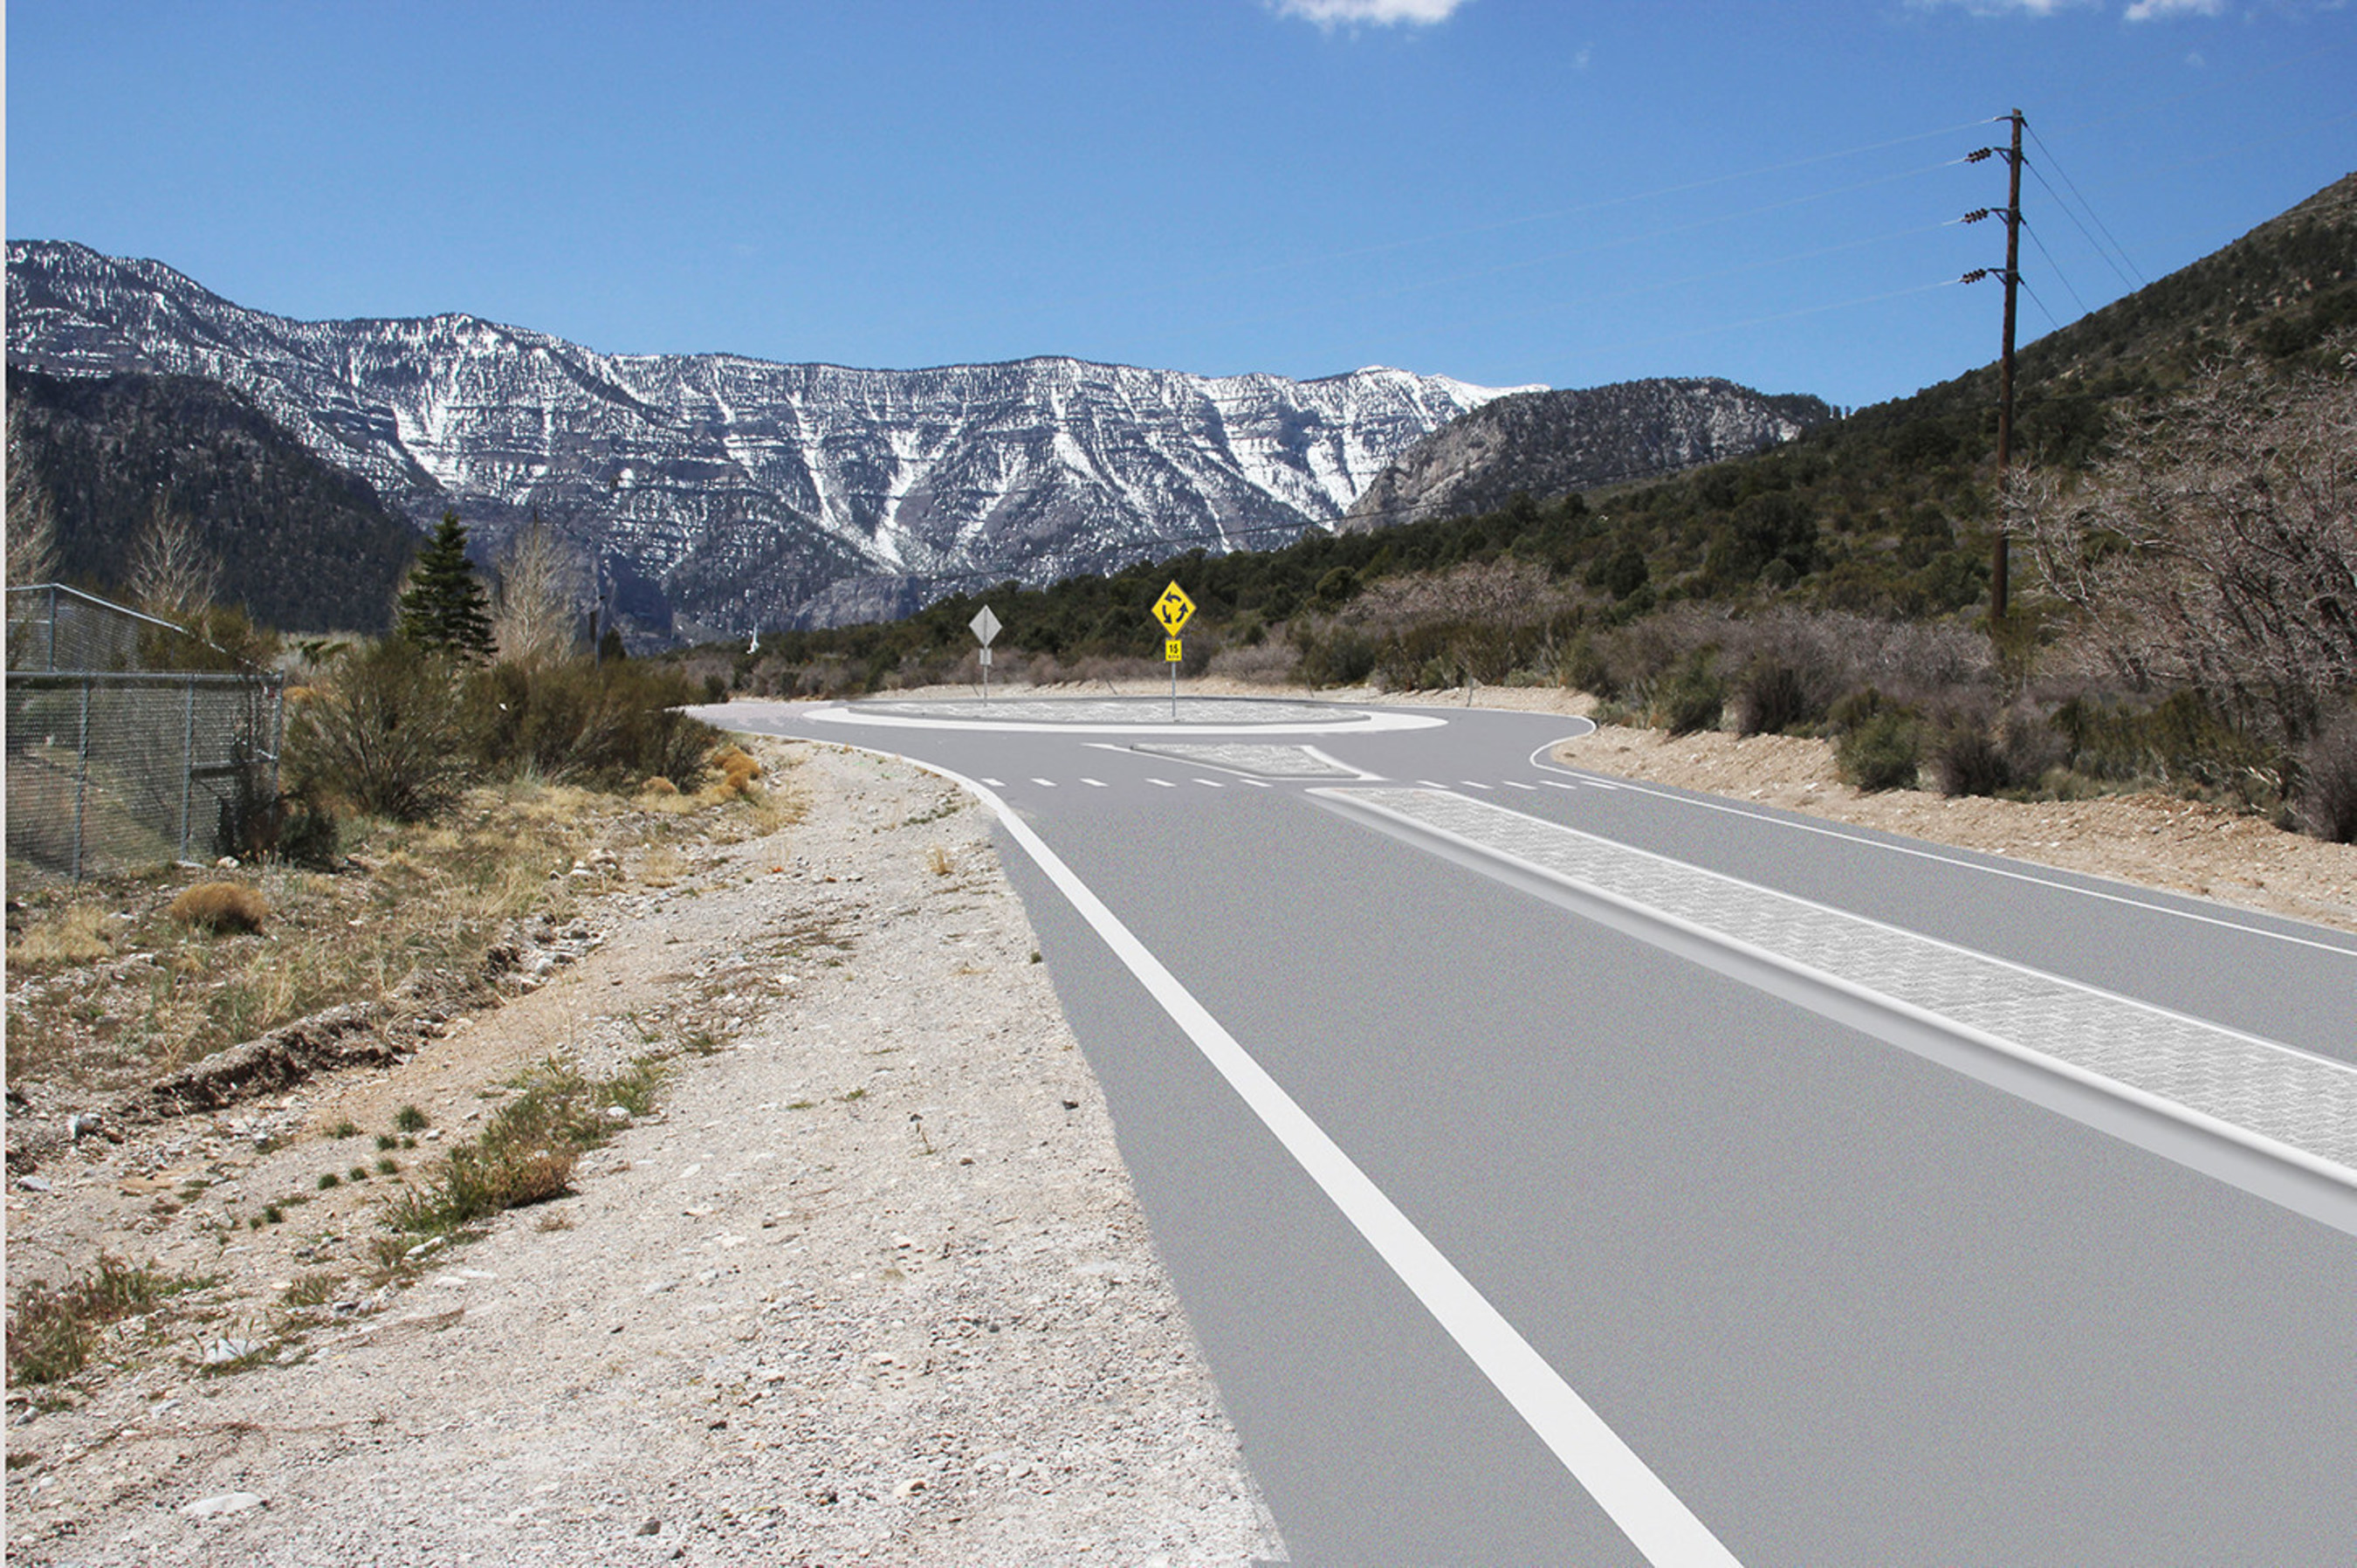 Central Federal Lands Highway Division selects CH2M to provide full service design, indefinite delivery/indefinite quantity (IDIQ) contract architect-engineer services in support of delivery of the Federal Lands Highway Program.